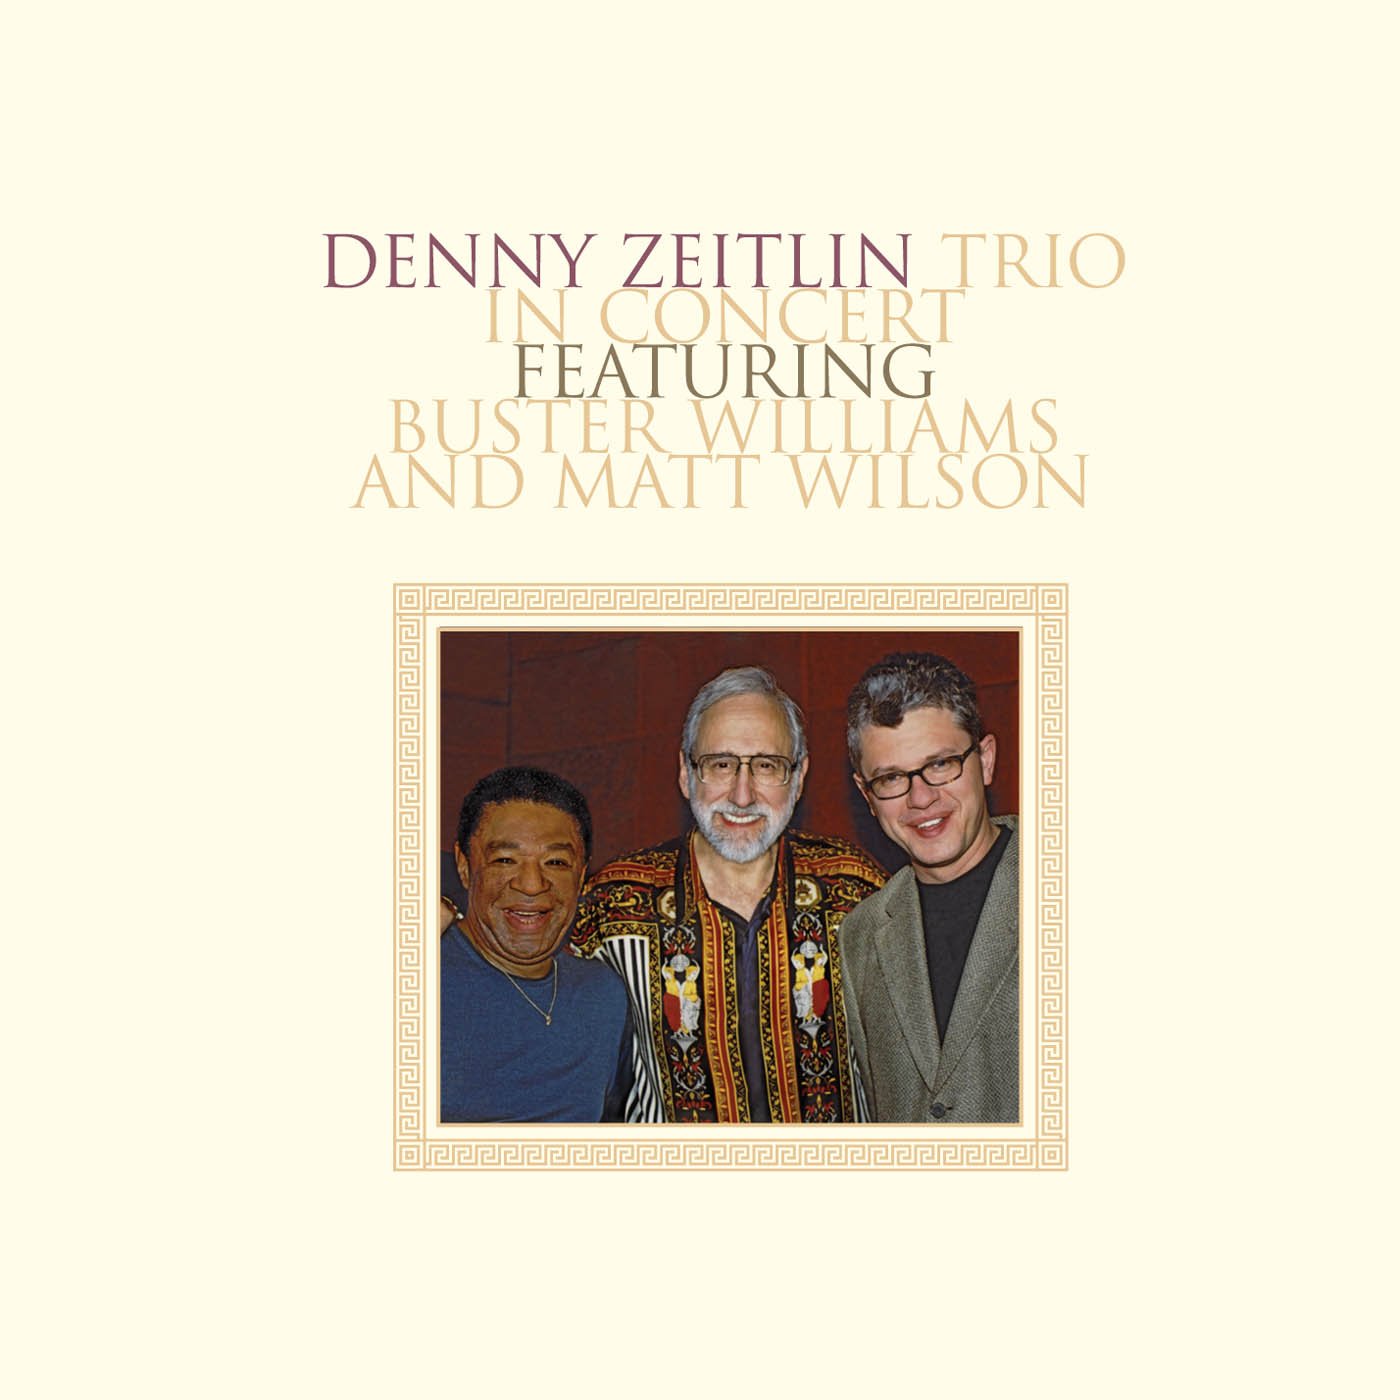 Denny Zeitlin Trio in Concert Featuring Buster Williams and Matt Wilson by Denny Zeitlin cover